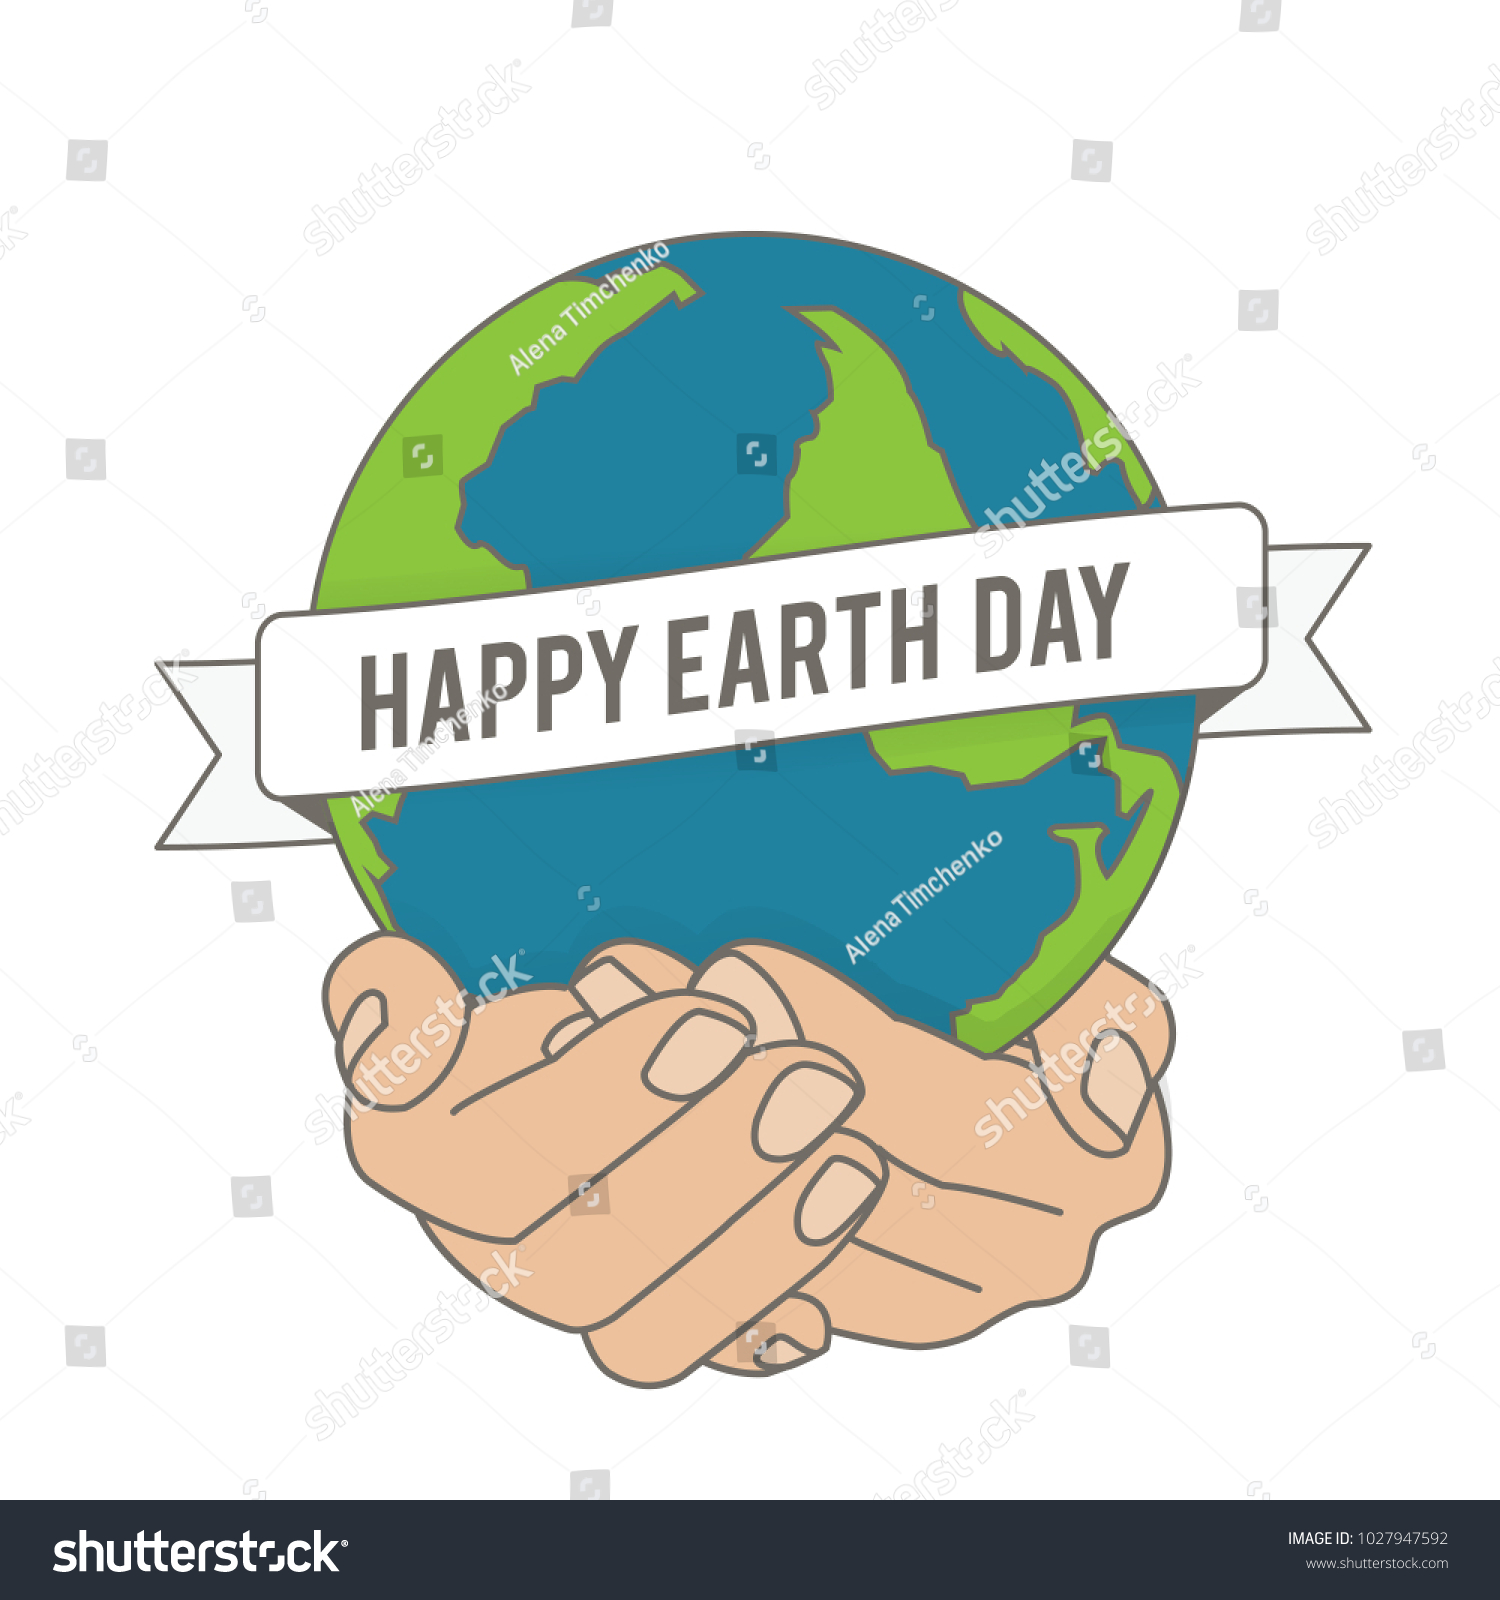 World day earth vector image banner stock vector 1027947592 world day of the earth vector image for banner design poster posters m4hsunfo